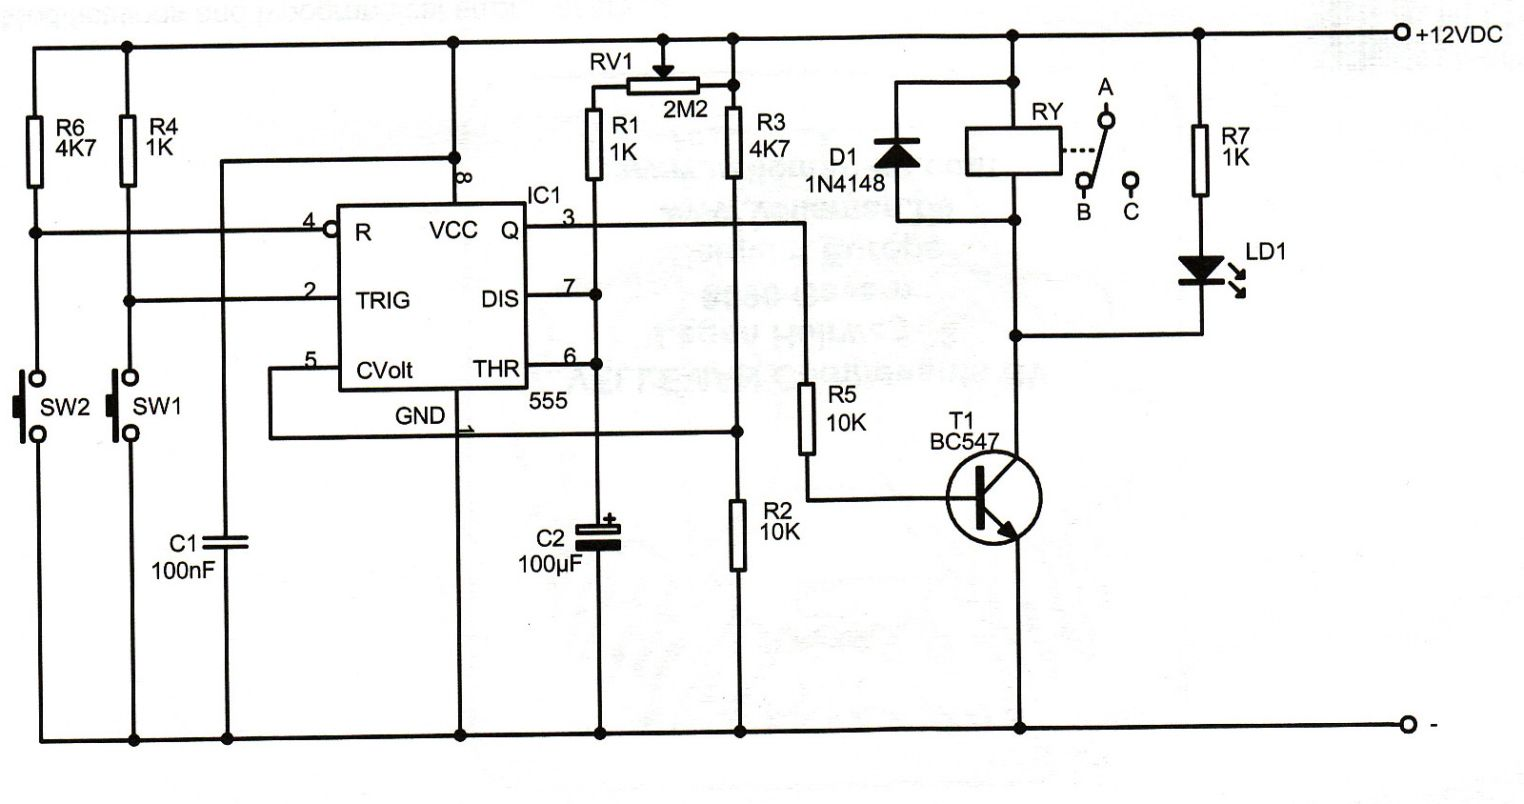 Nk 5348 Off Delay Timer Relay Circuit Together With Off Delay Timer Circuit Free Diagram